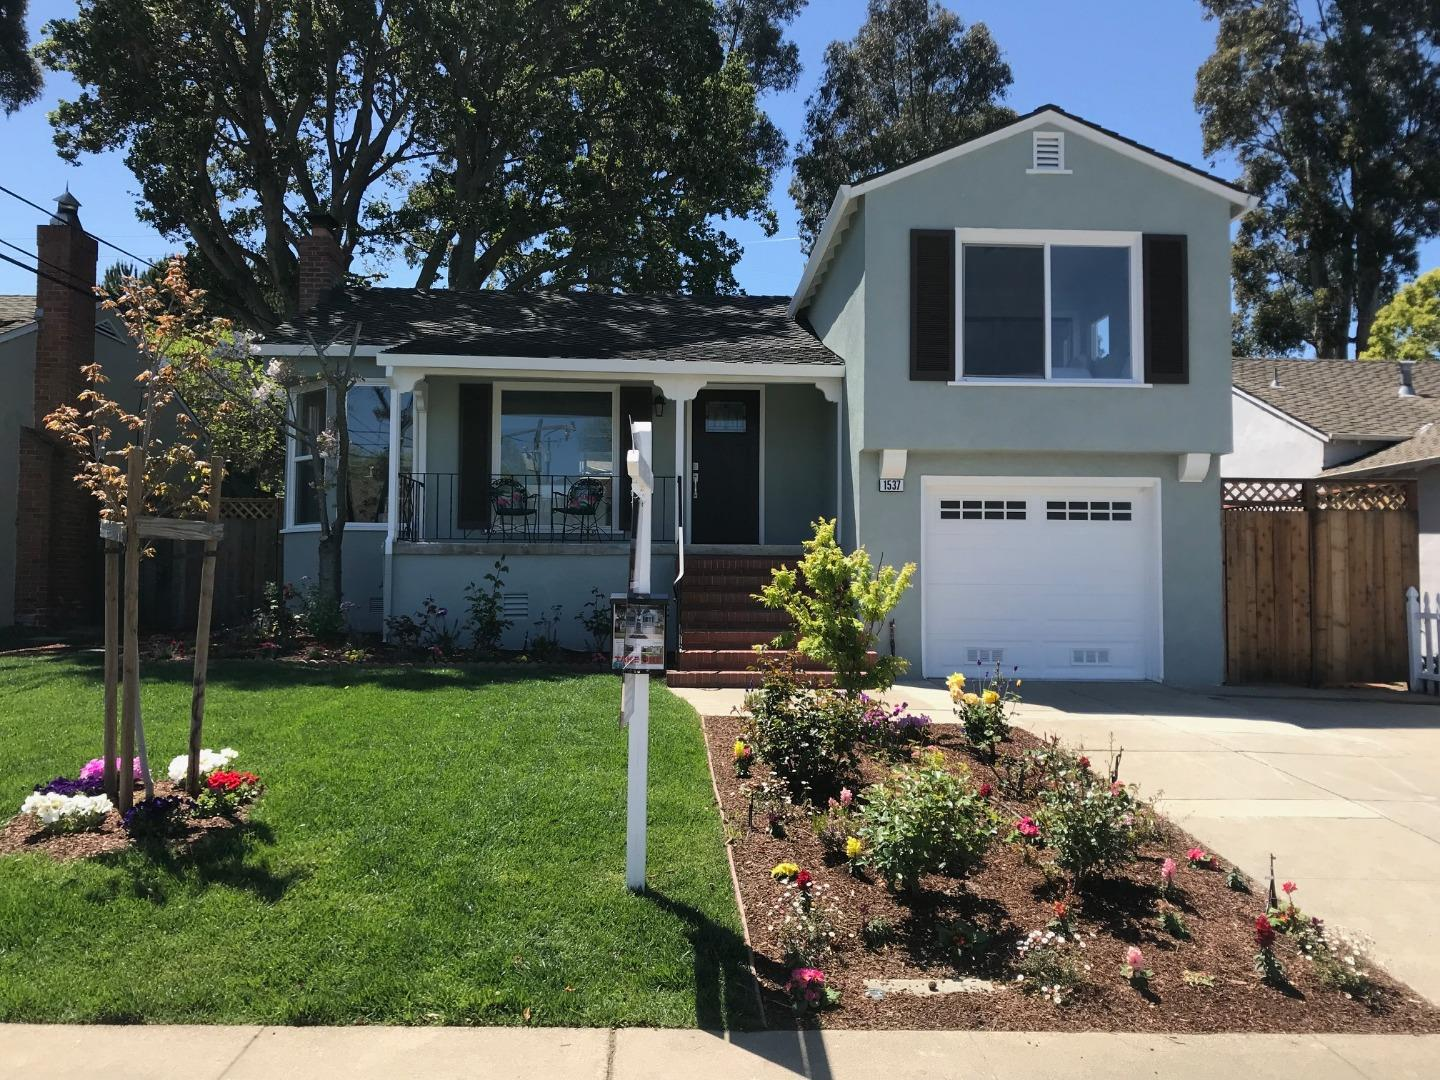 1537 Westmoor RD, Burlingame, California